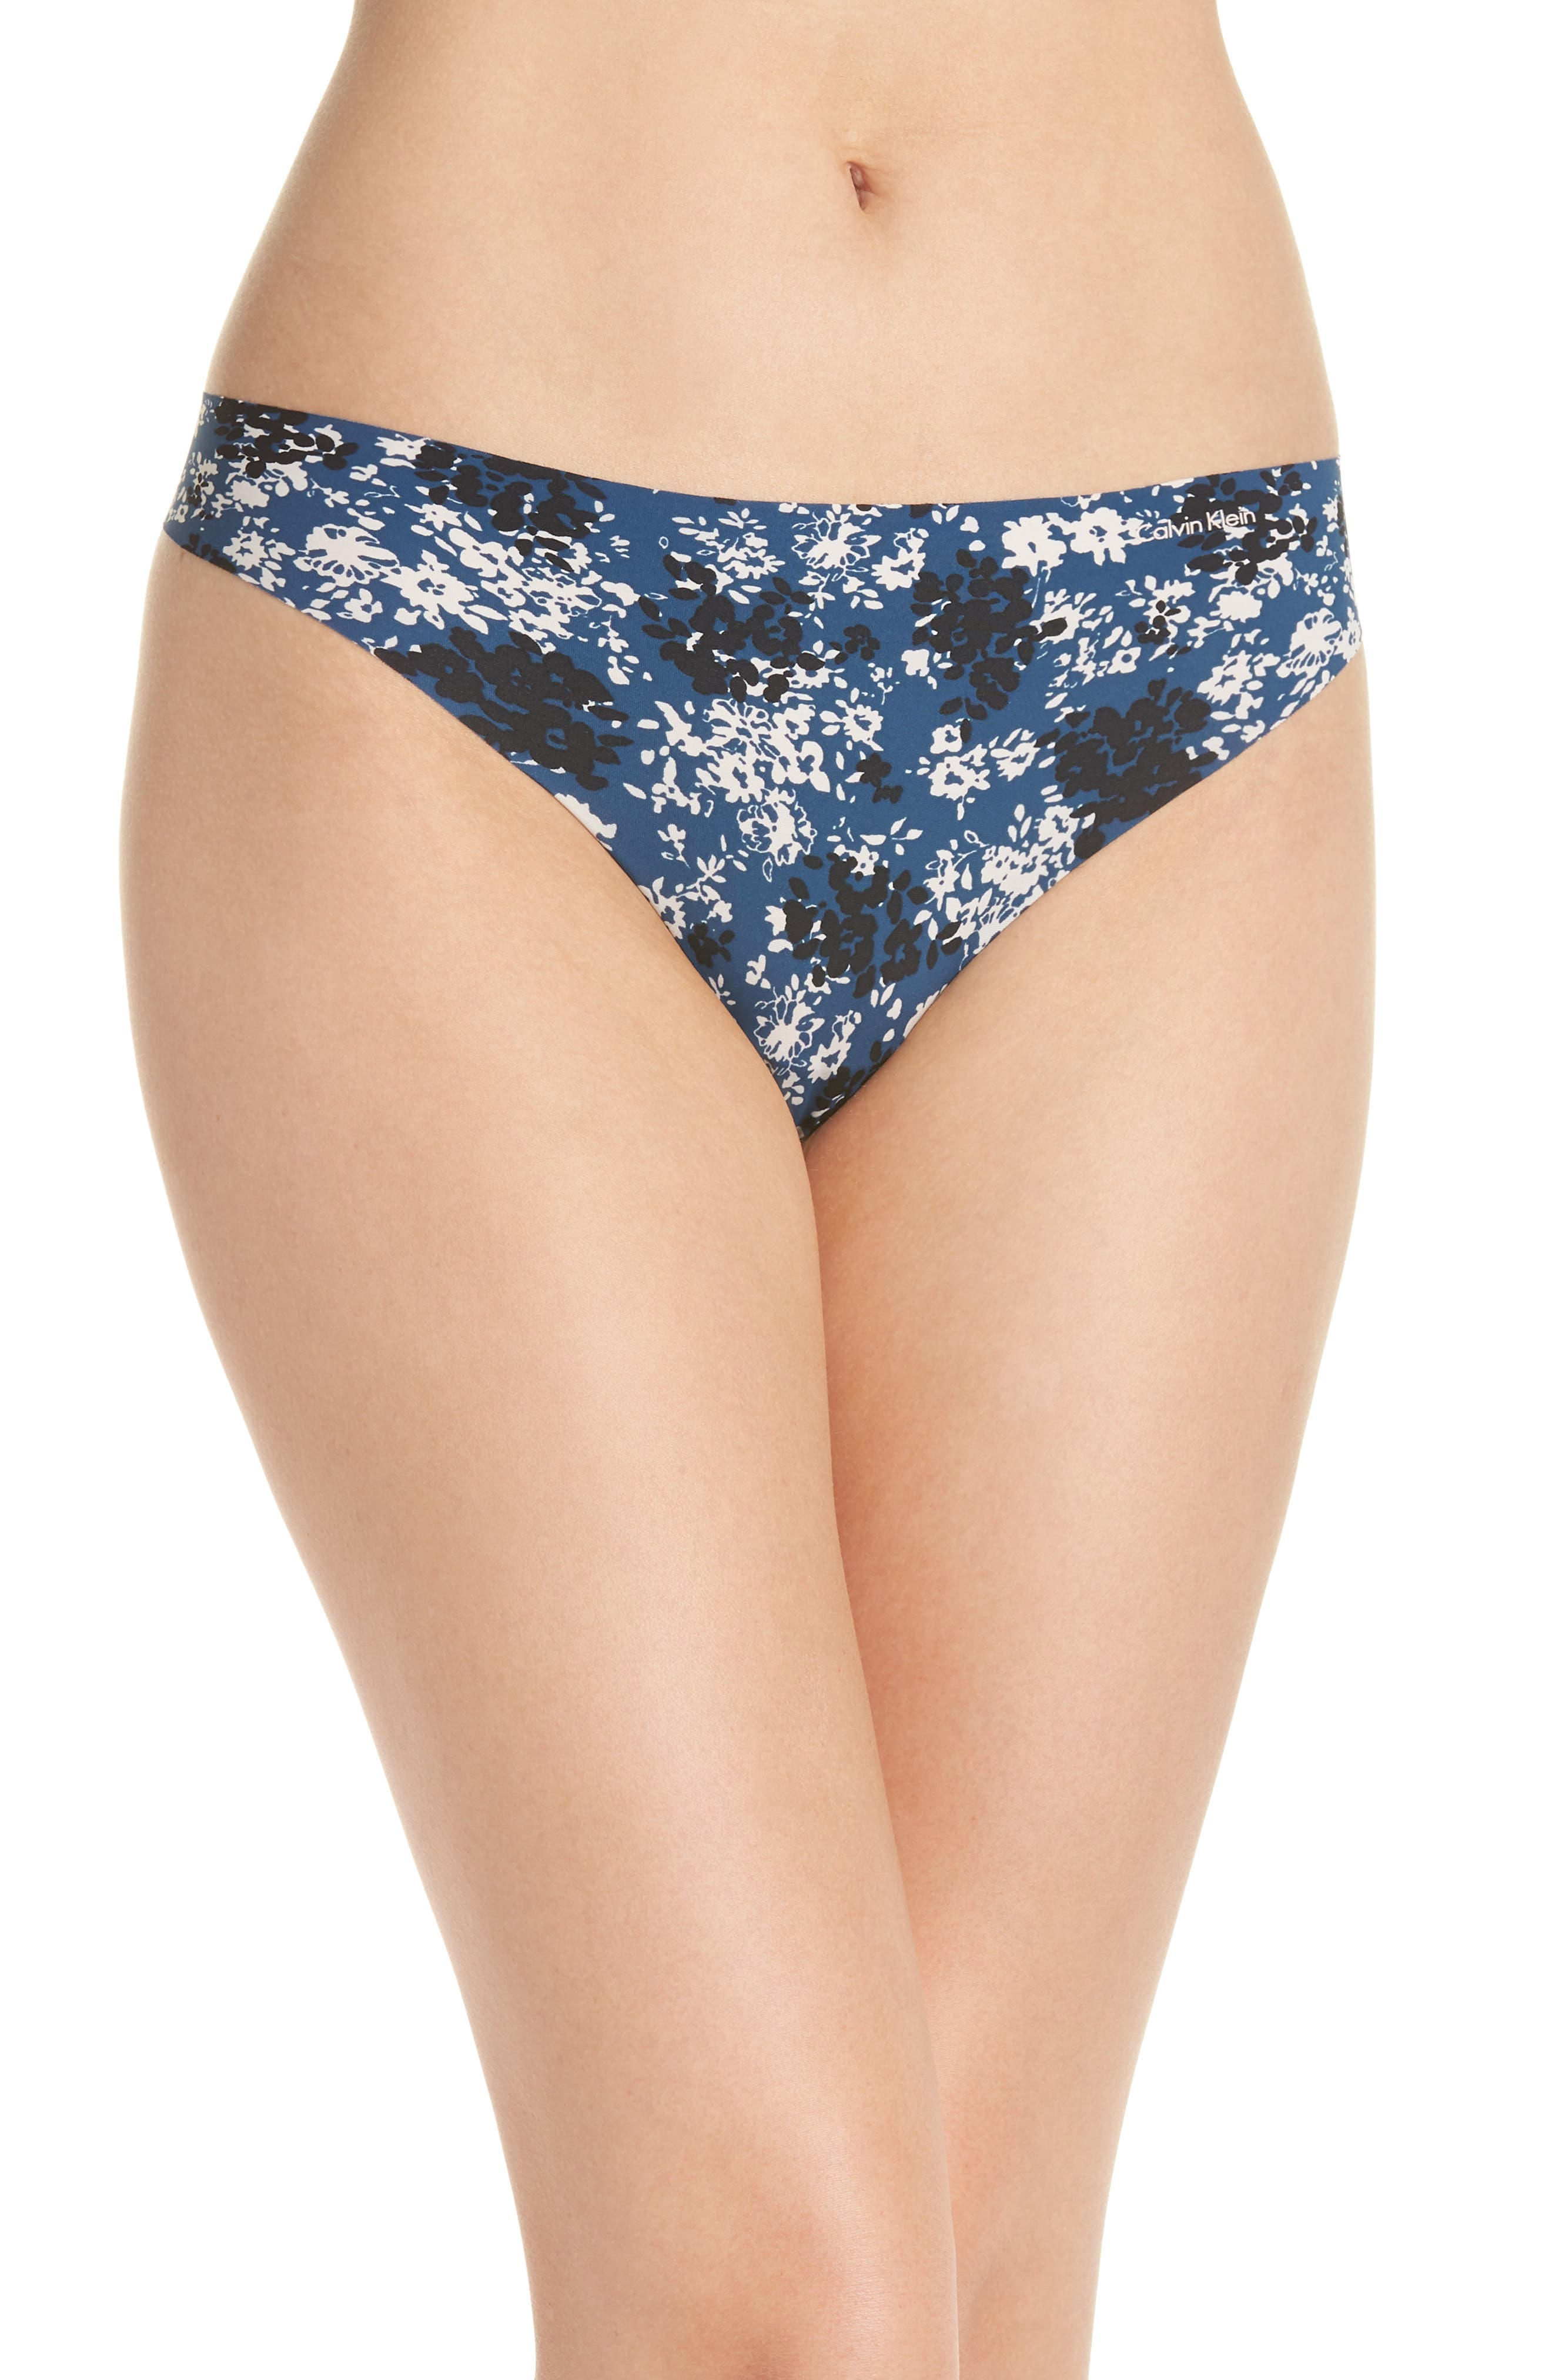 Invisibles Thong,                             Main thumbnail 1, color,                             SIMPLE FLORAL/ LYRIA BLUE